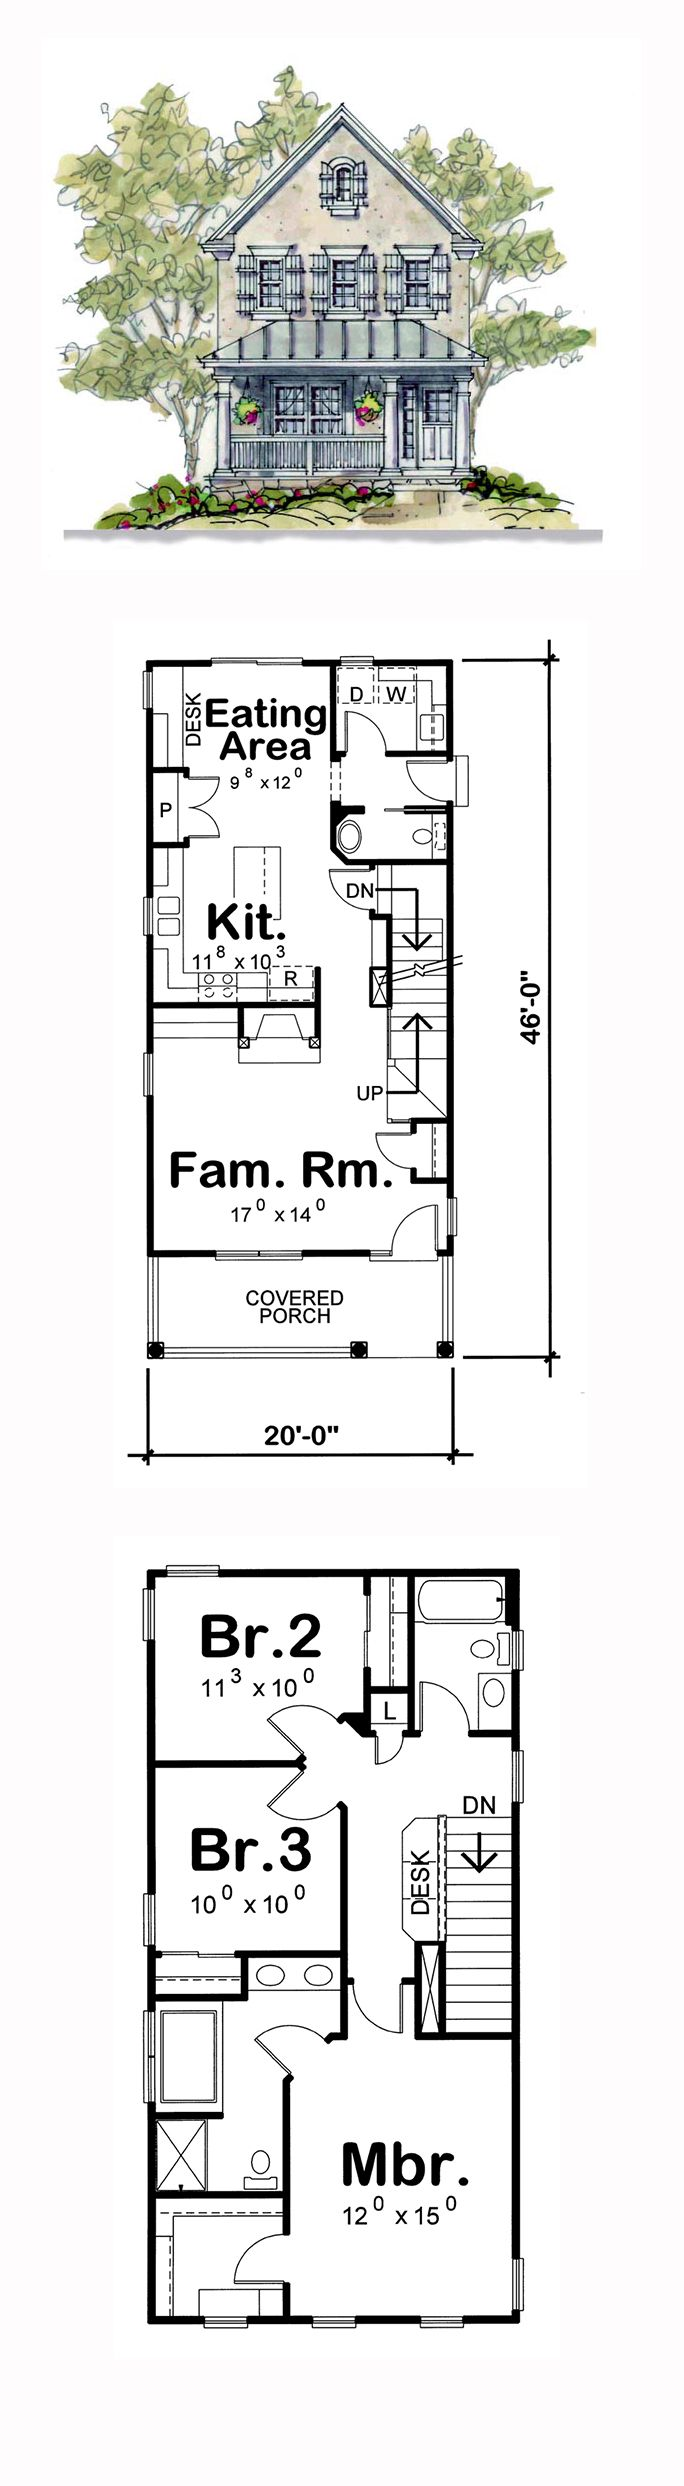 Narrow Lot House Plan 66630 | Total Living Area: 1575 sq. ft., 3 bedrooms and 2.5 bathrooms